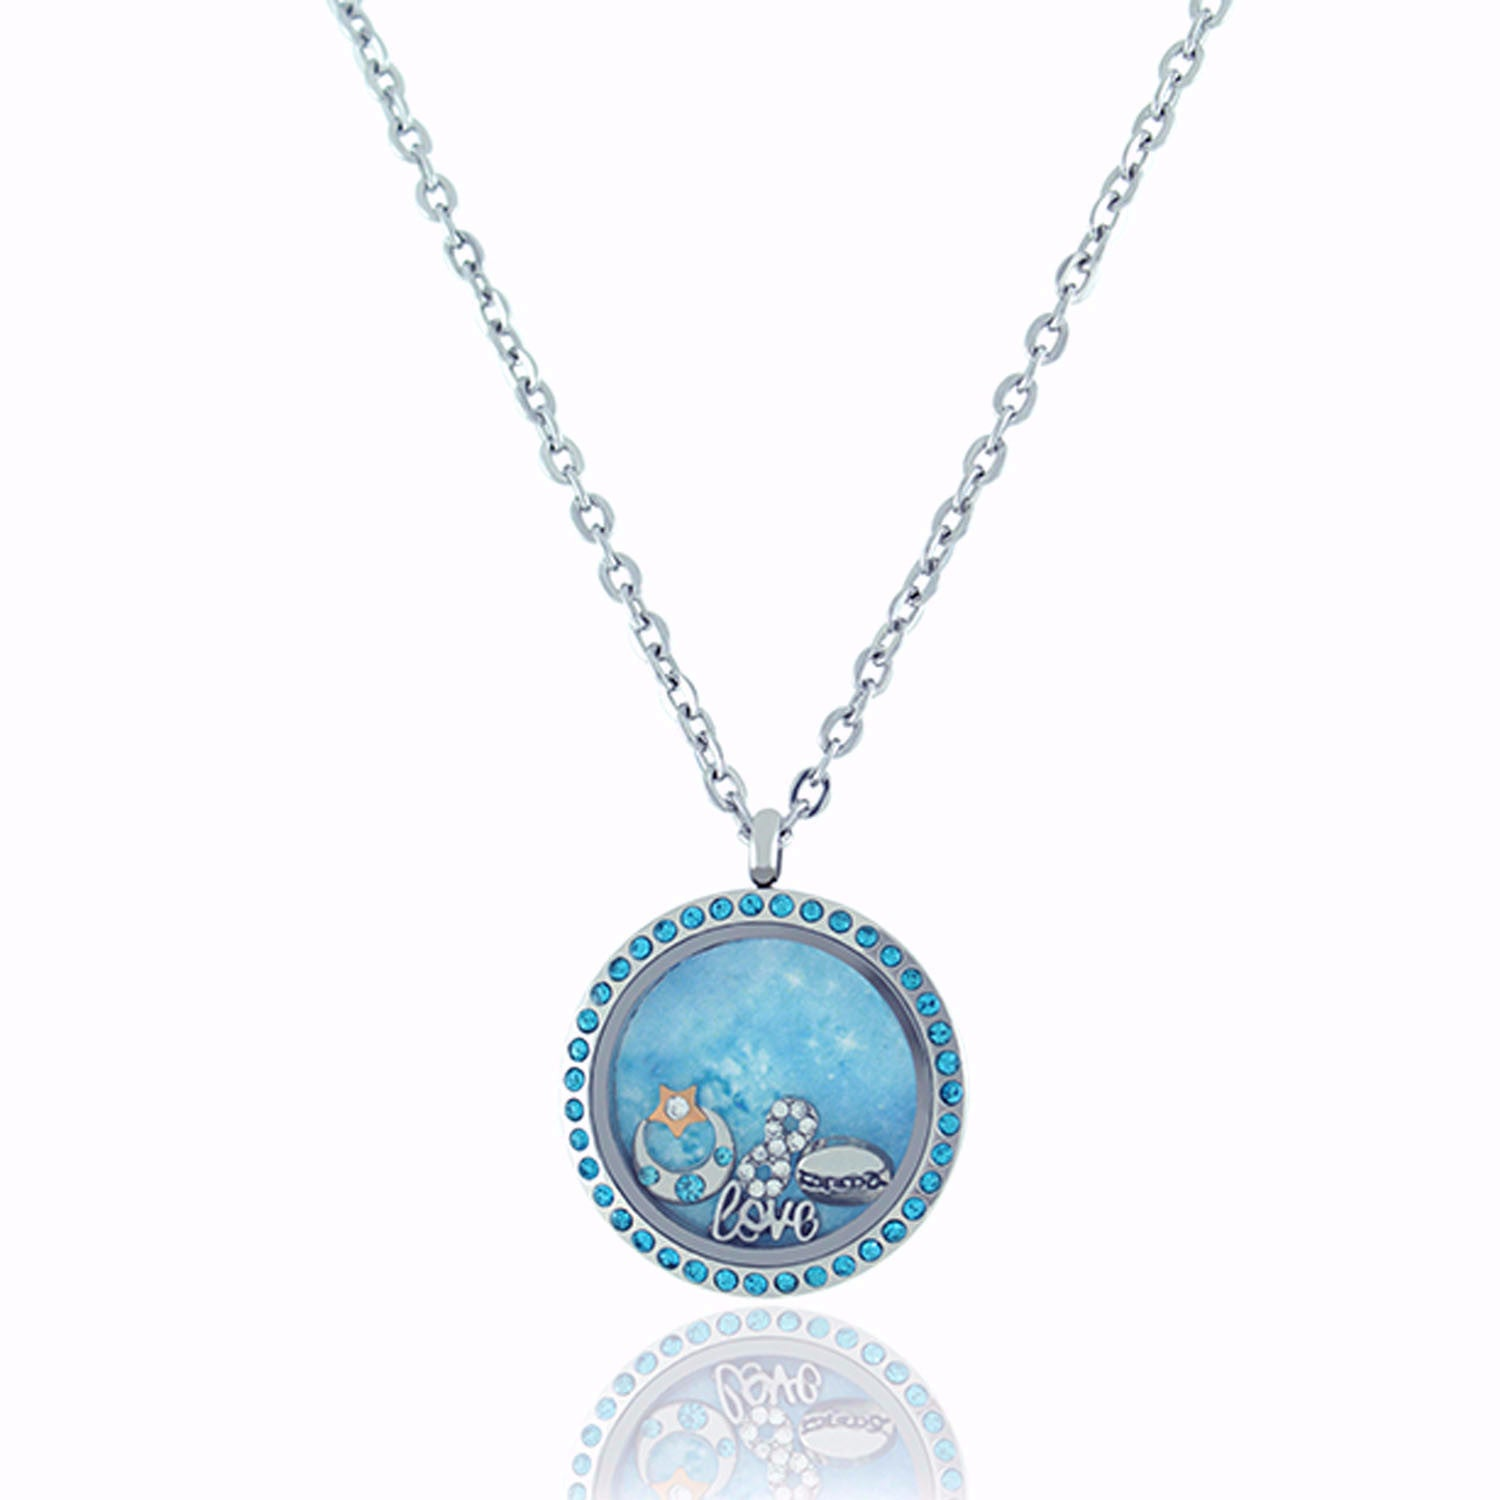 Floating Locket Necklace with Matching Chain and Choice of 6 Charms (Twist Blue Rhinestone)